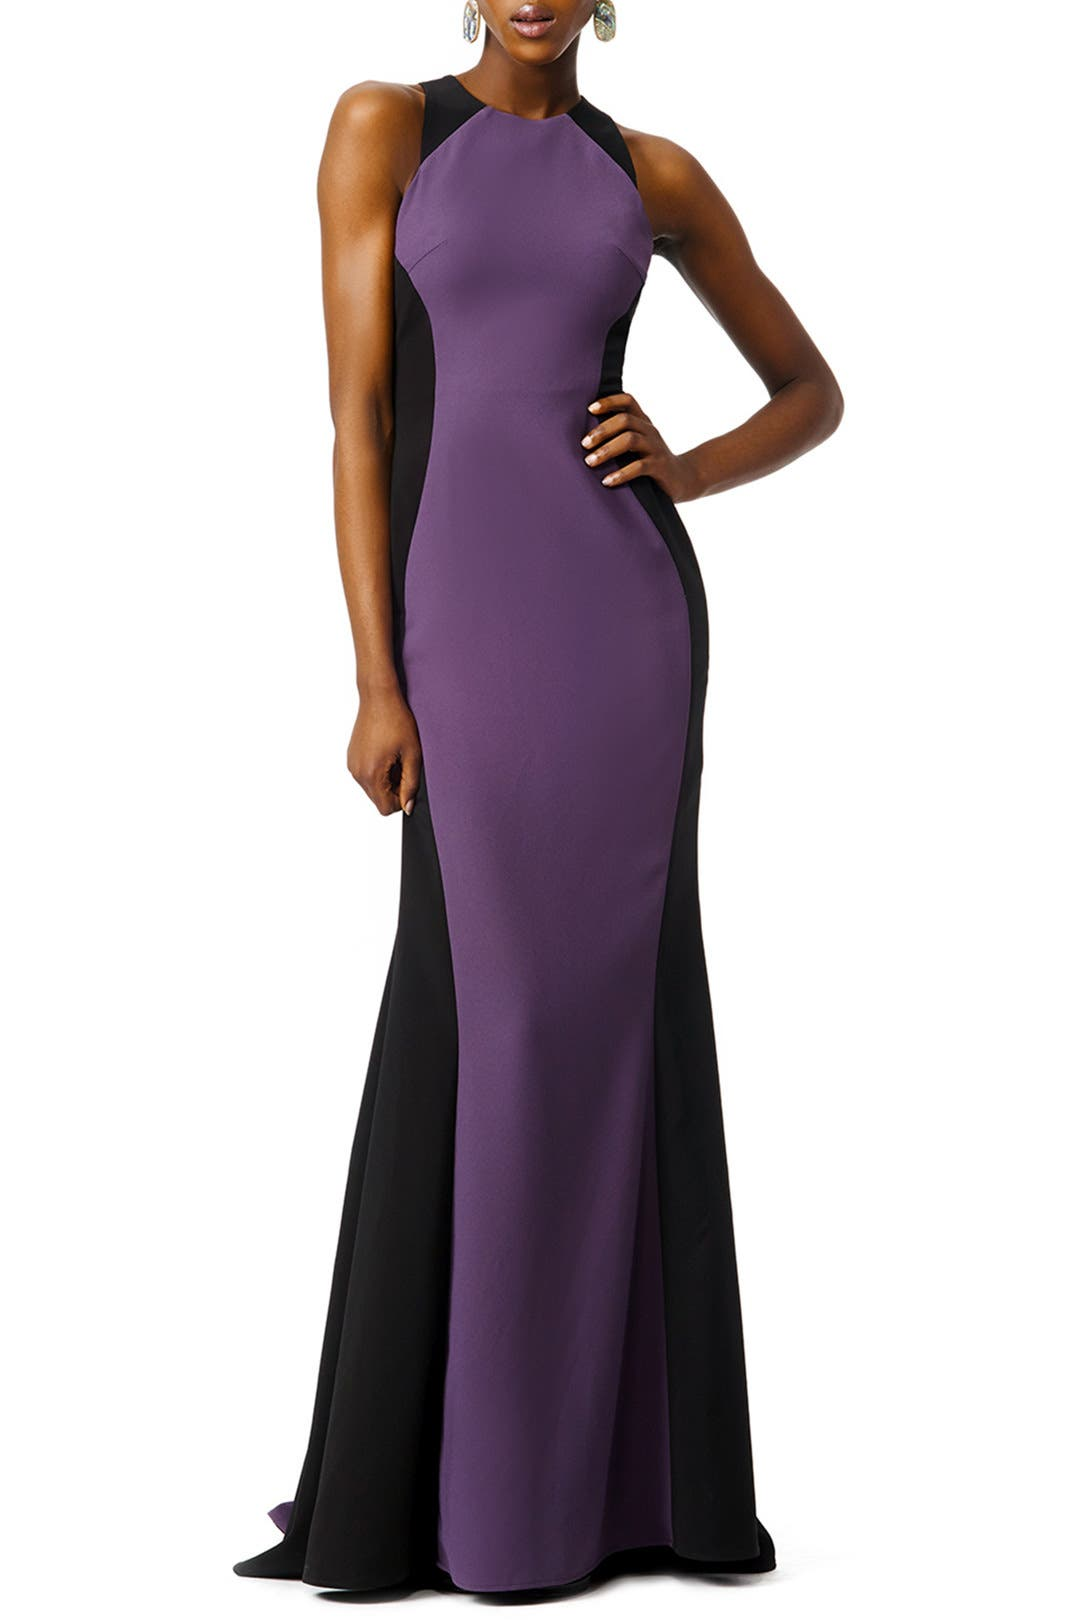 Black Night Gown by nha khanh for $150 | Rent the Runway